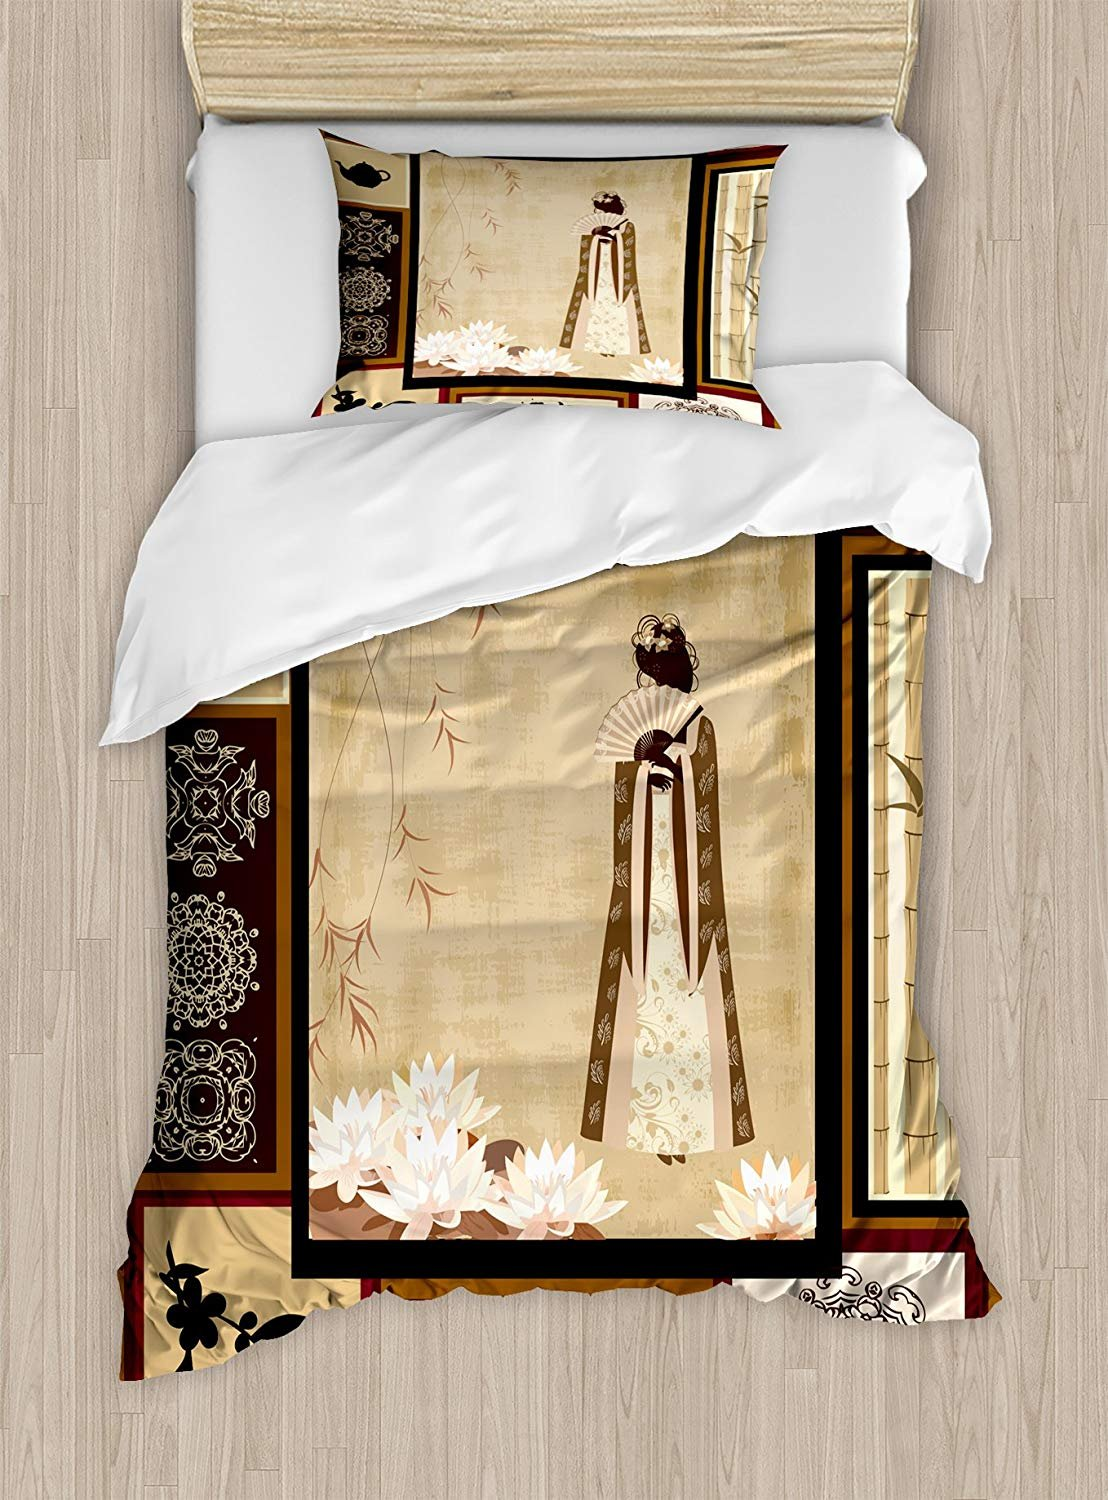 Twin XL Extra Long Bedding Set, Japanese Duvet Cover Set, Girl in Traditional Dress and Cultural Patterns Ornaments Antique Eastern Collage, Cosy House Collection 4 Piece Bedding Sets